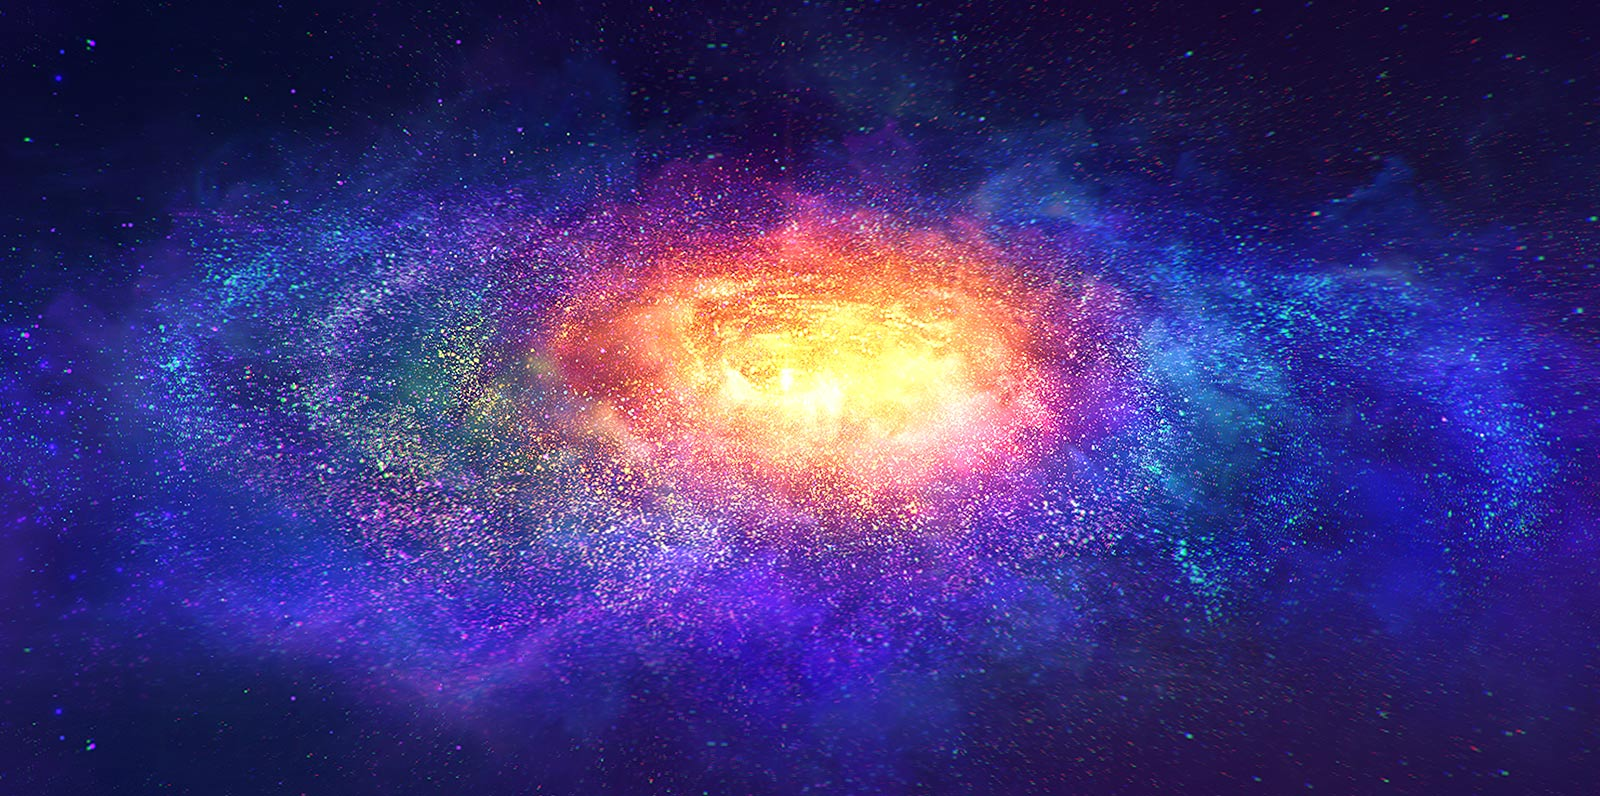 Millions of tiny colorful particles in space